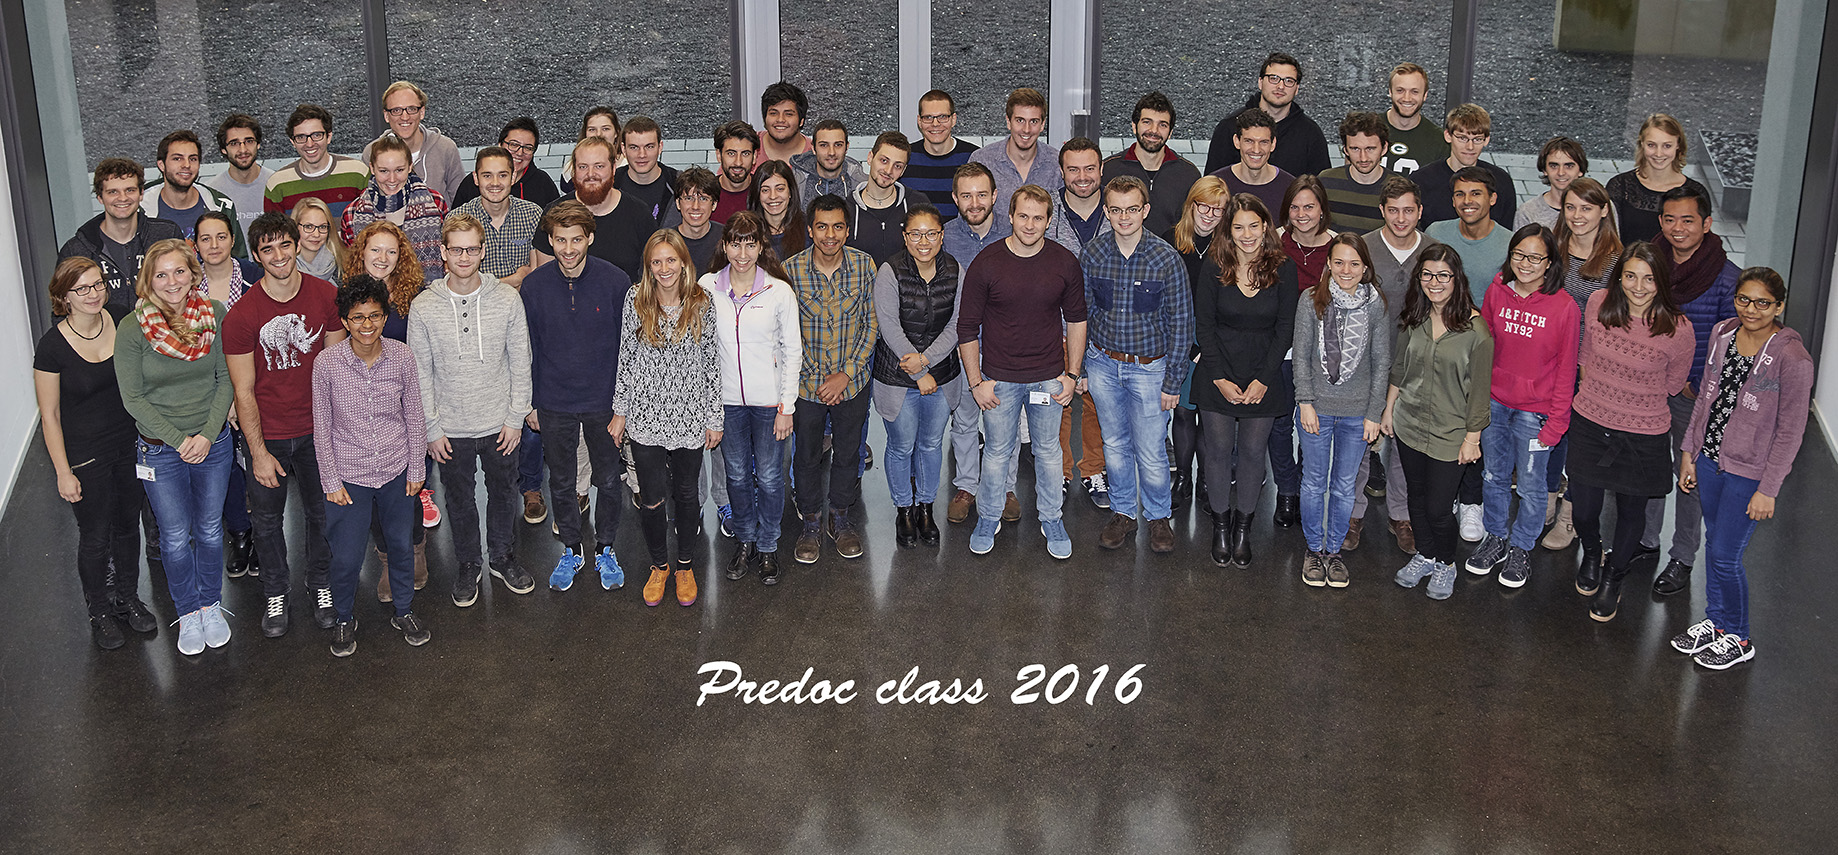 The 2016 intake of EMBL PhD students